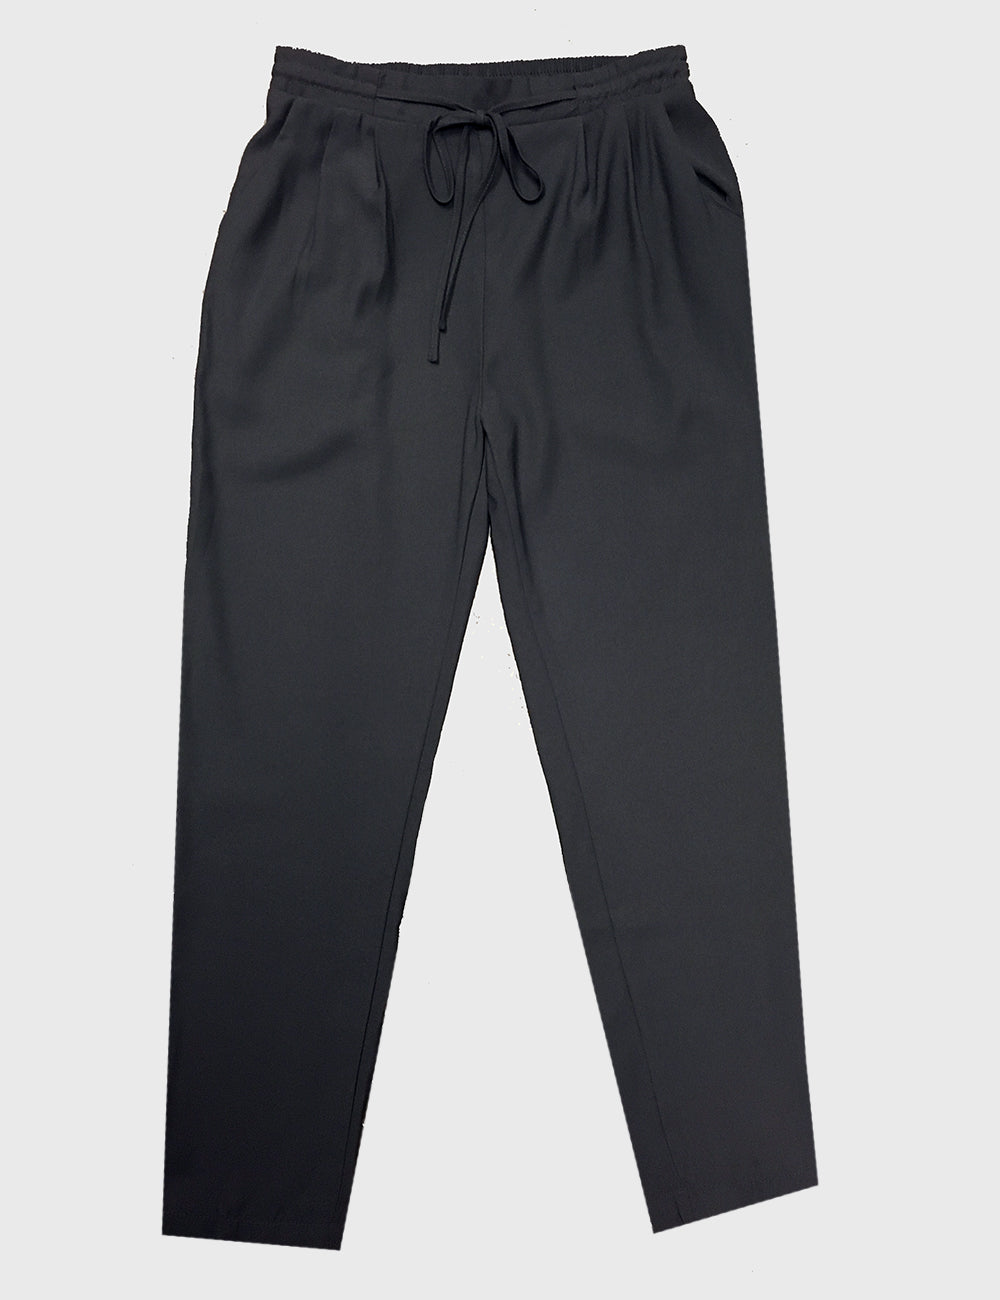 Drawstring Pleat Pants $10/each